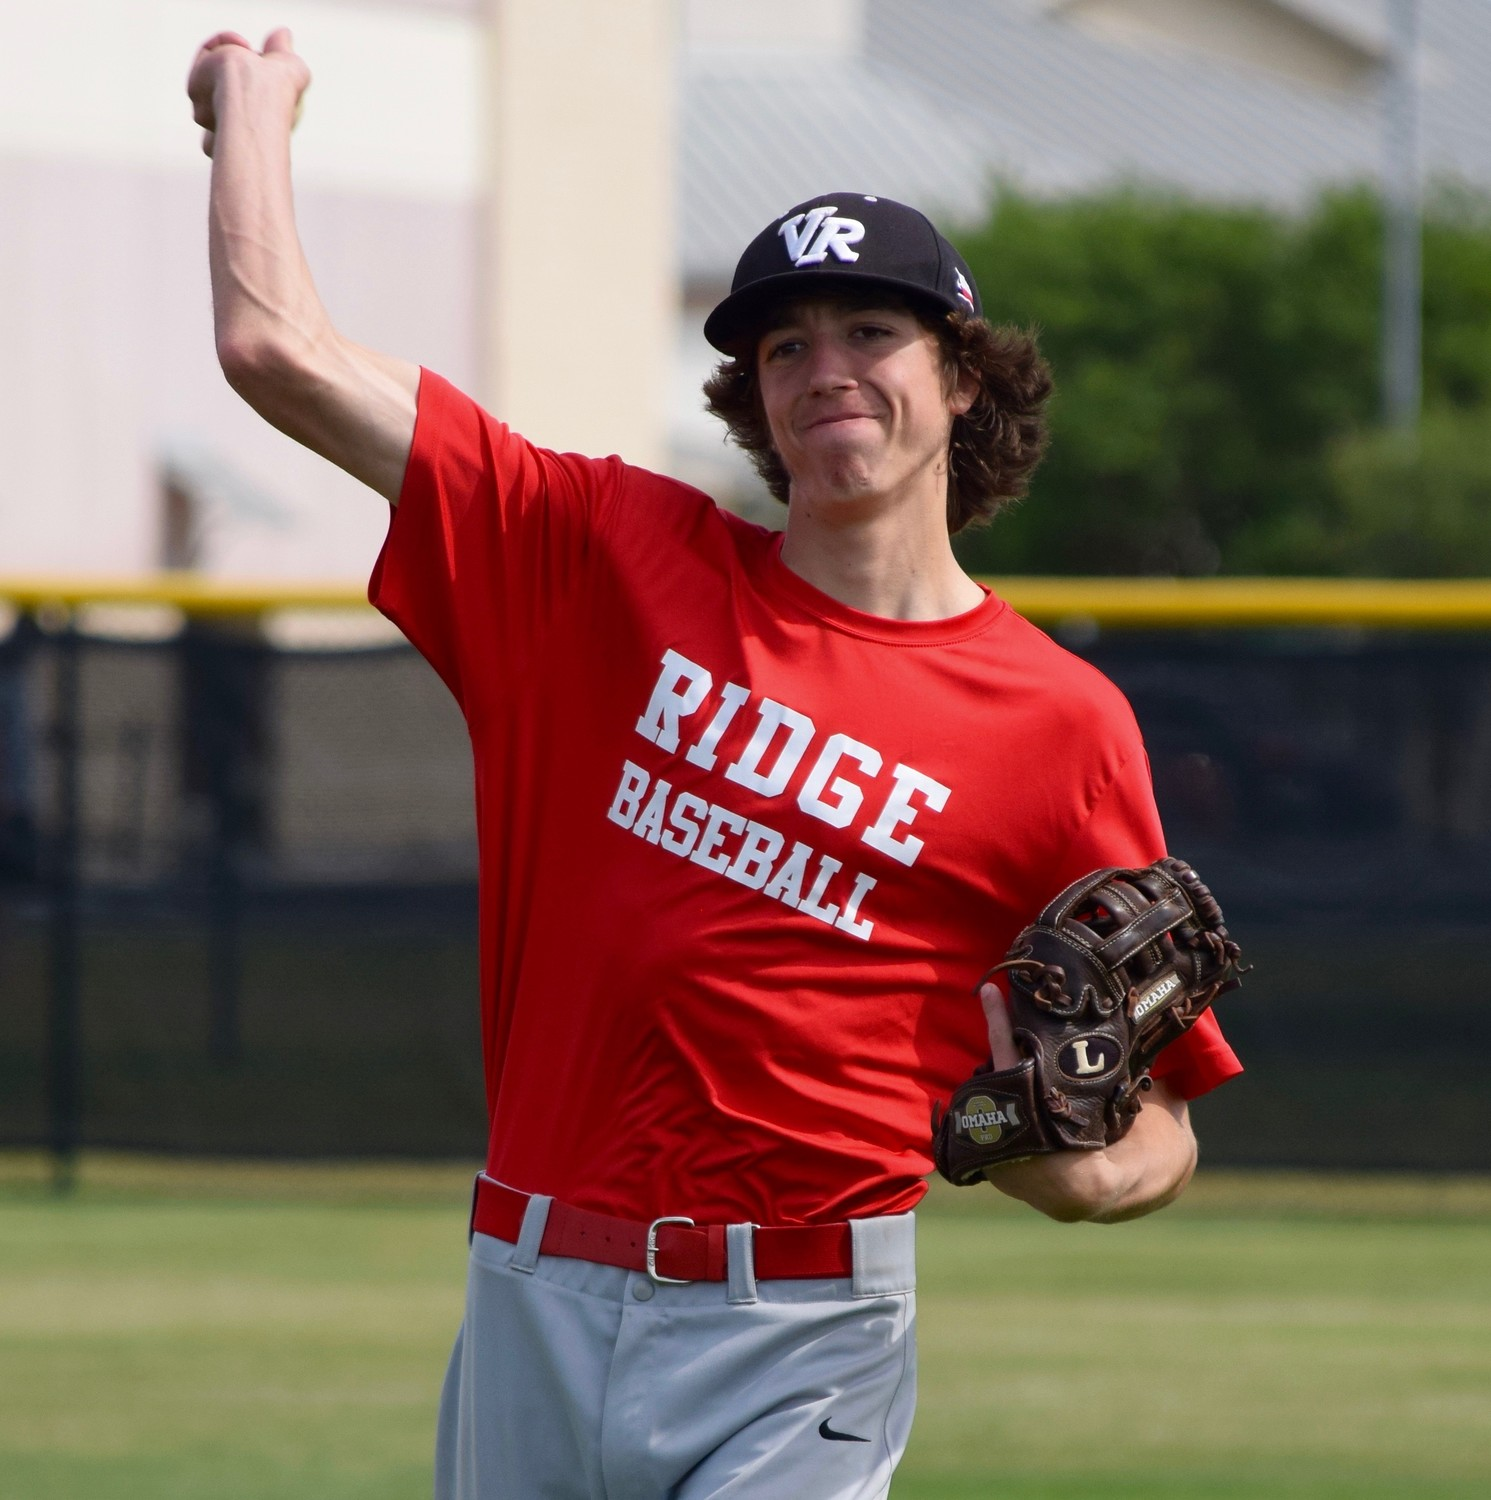 Vista Ridge pitcher Nathan Fetchel threw six innings and had five strikeouts as the Rangers handed No. 1 Lake Travis its first loss of the season last week. They will be the No. 3 seed out of District 25-6A.